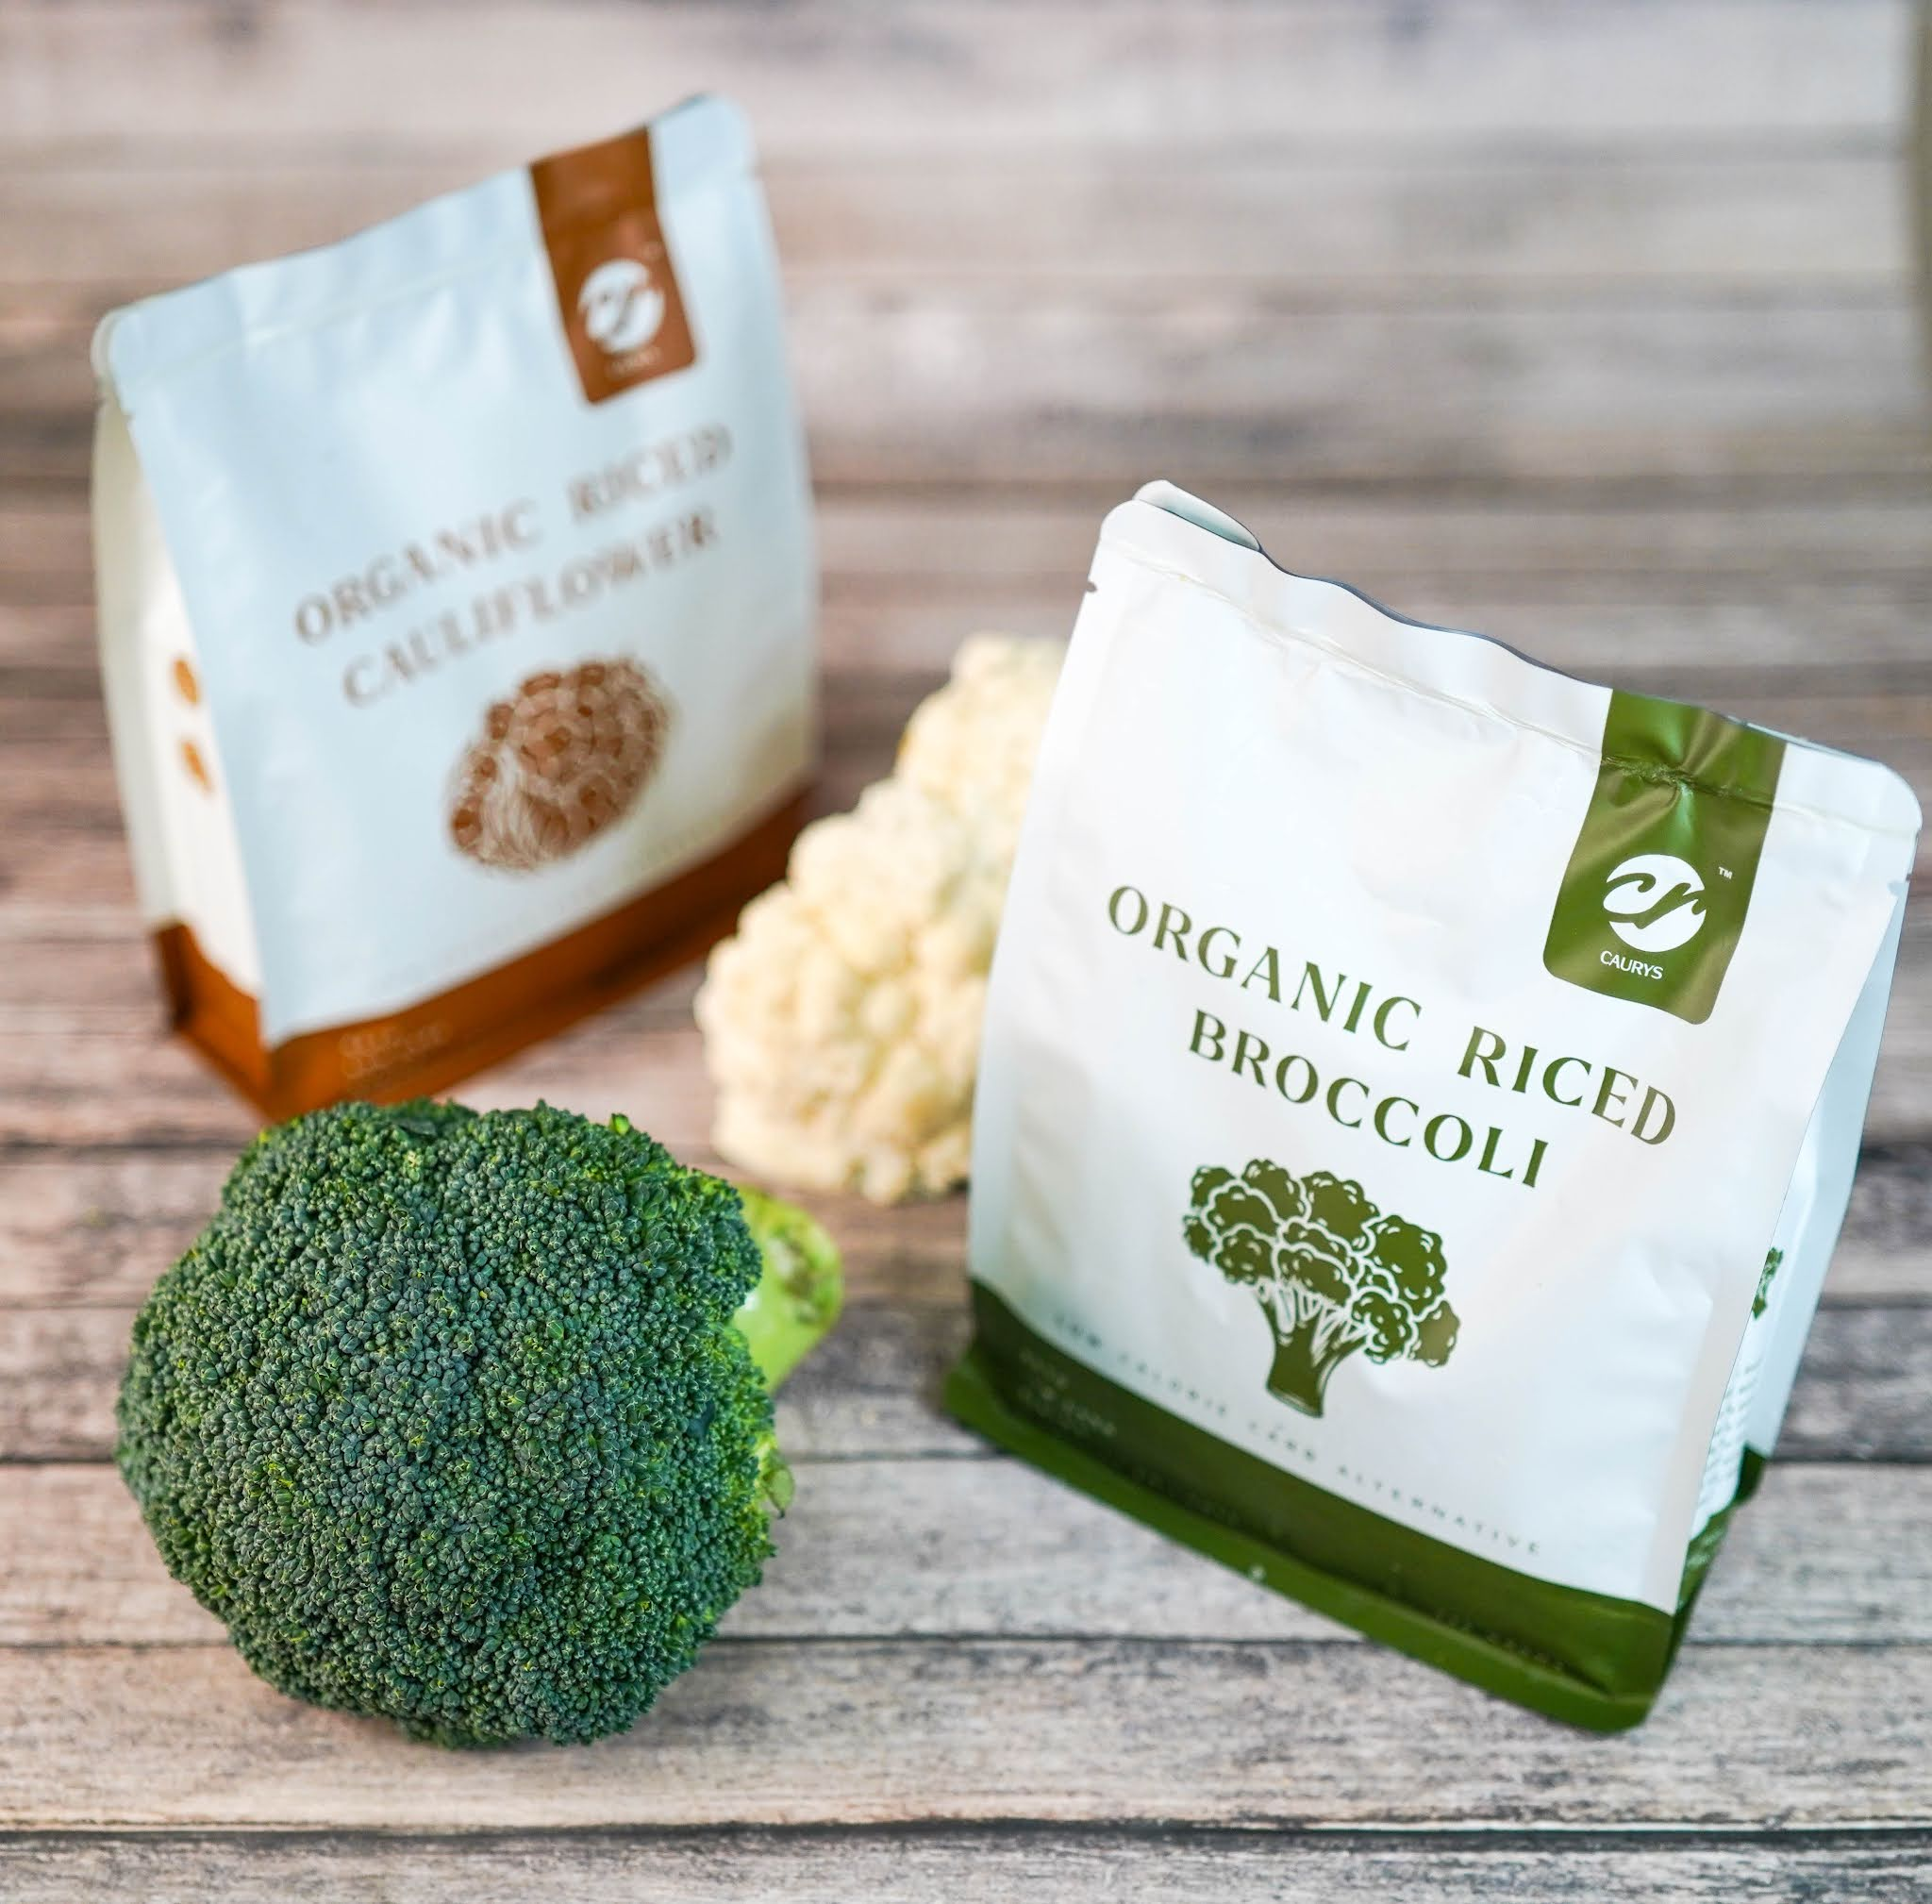 Caurys: Healthy, convenient riced broccoli & cauliflower for home cooking